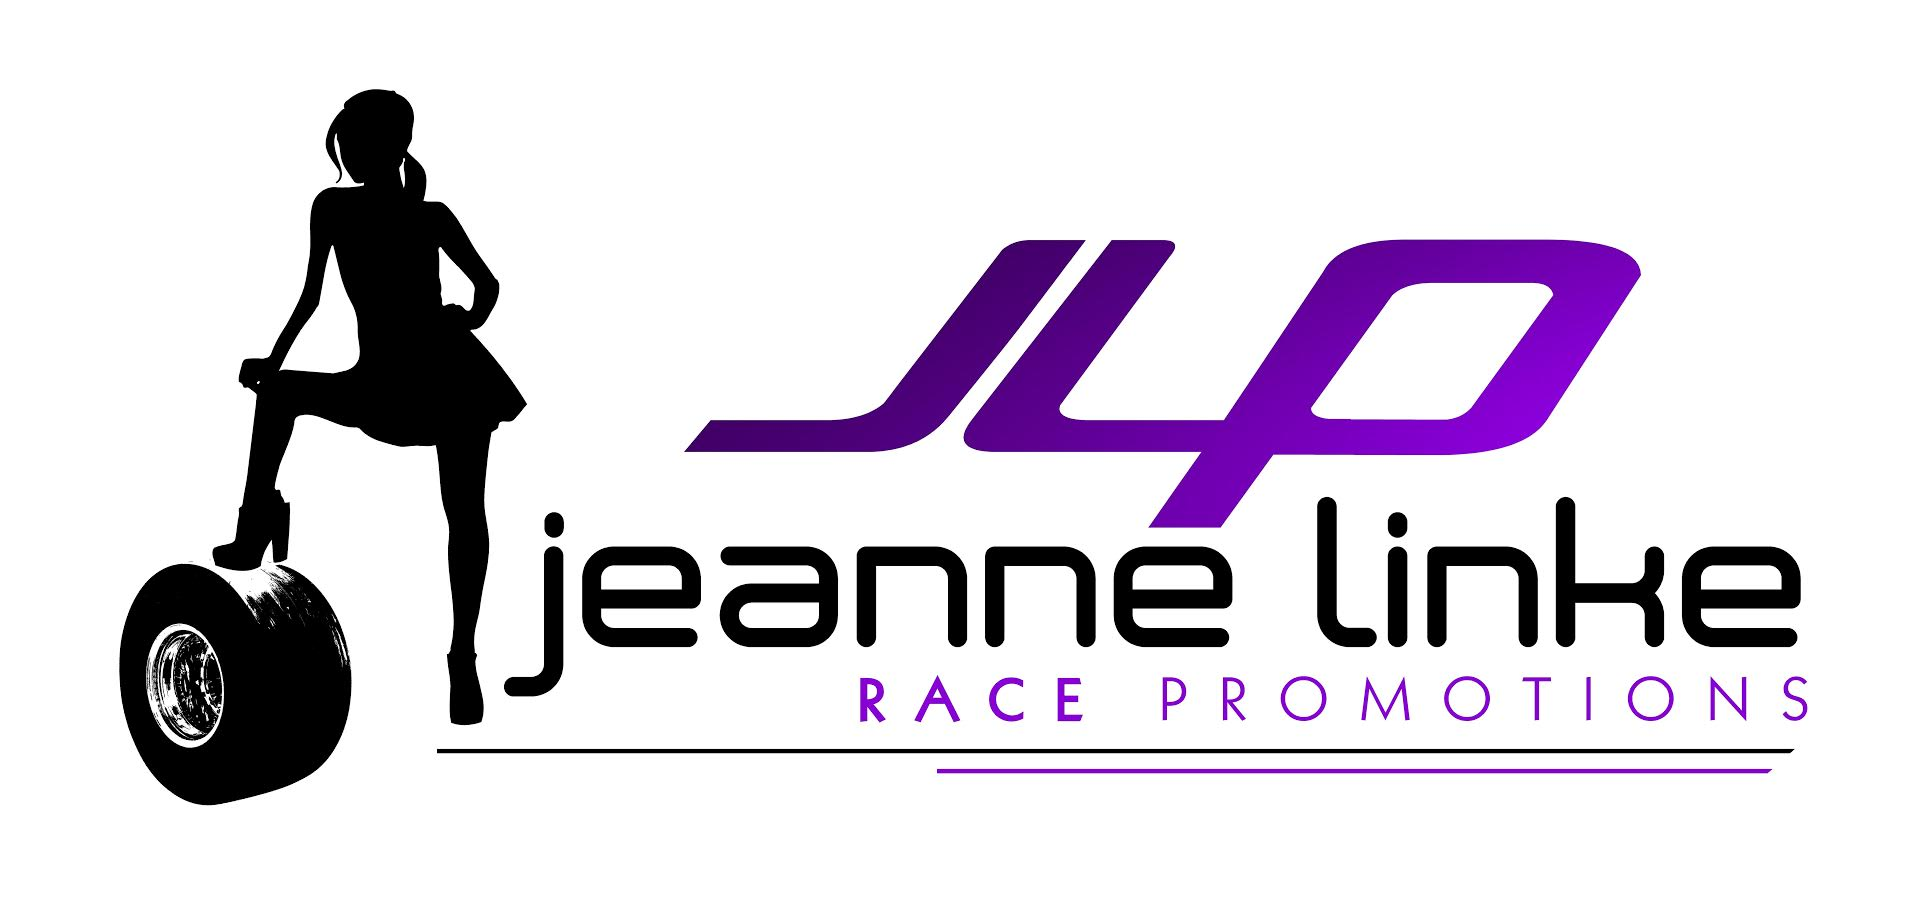 Jeanne Linke Race Promotions Logo